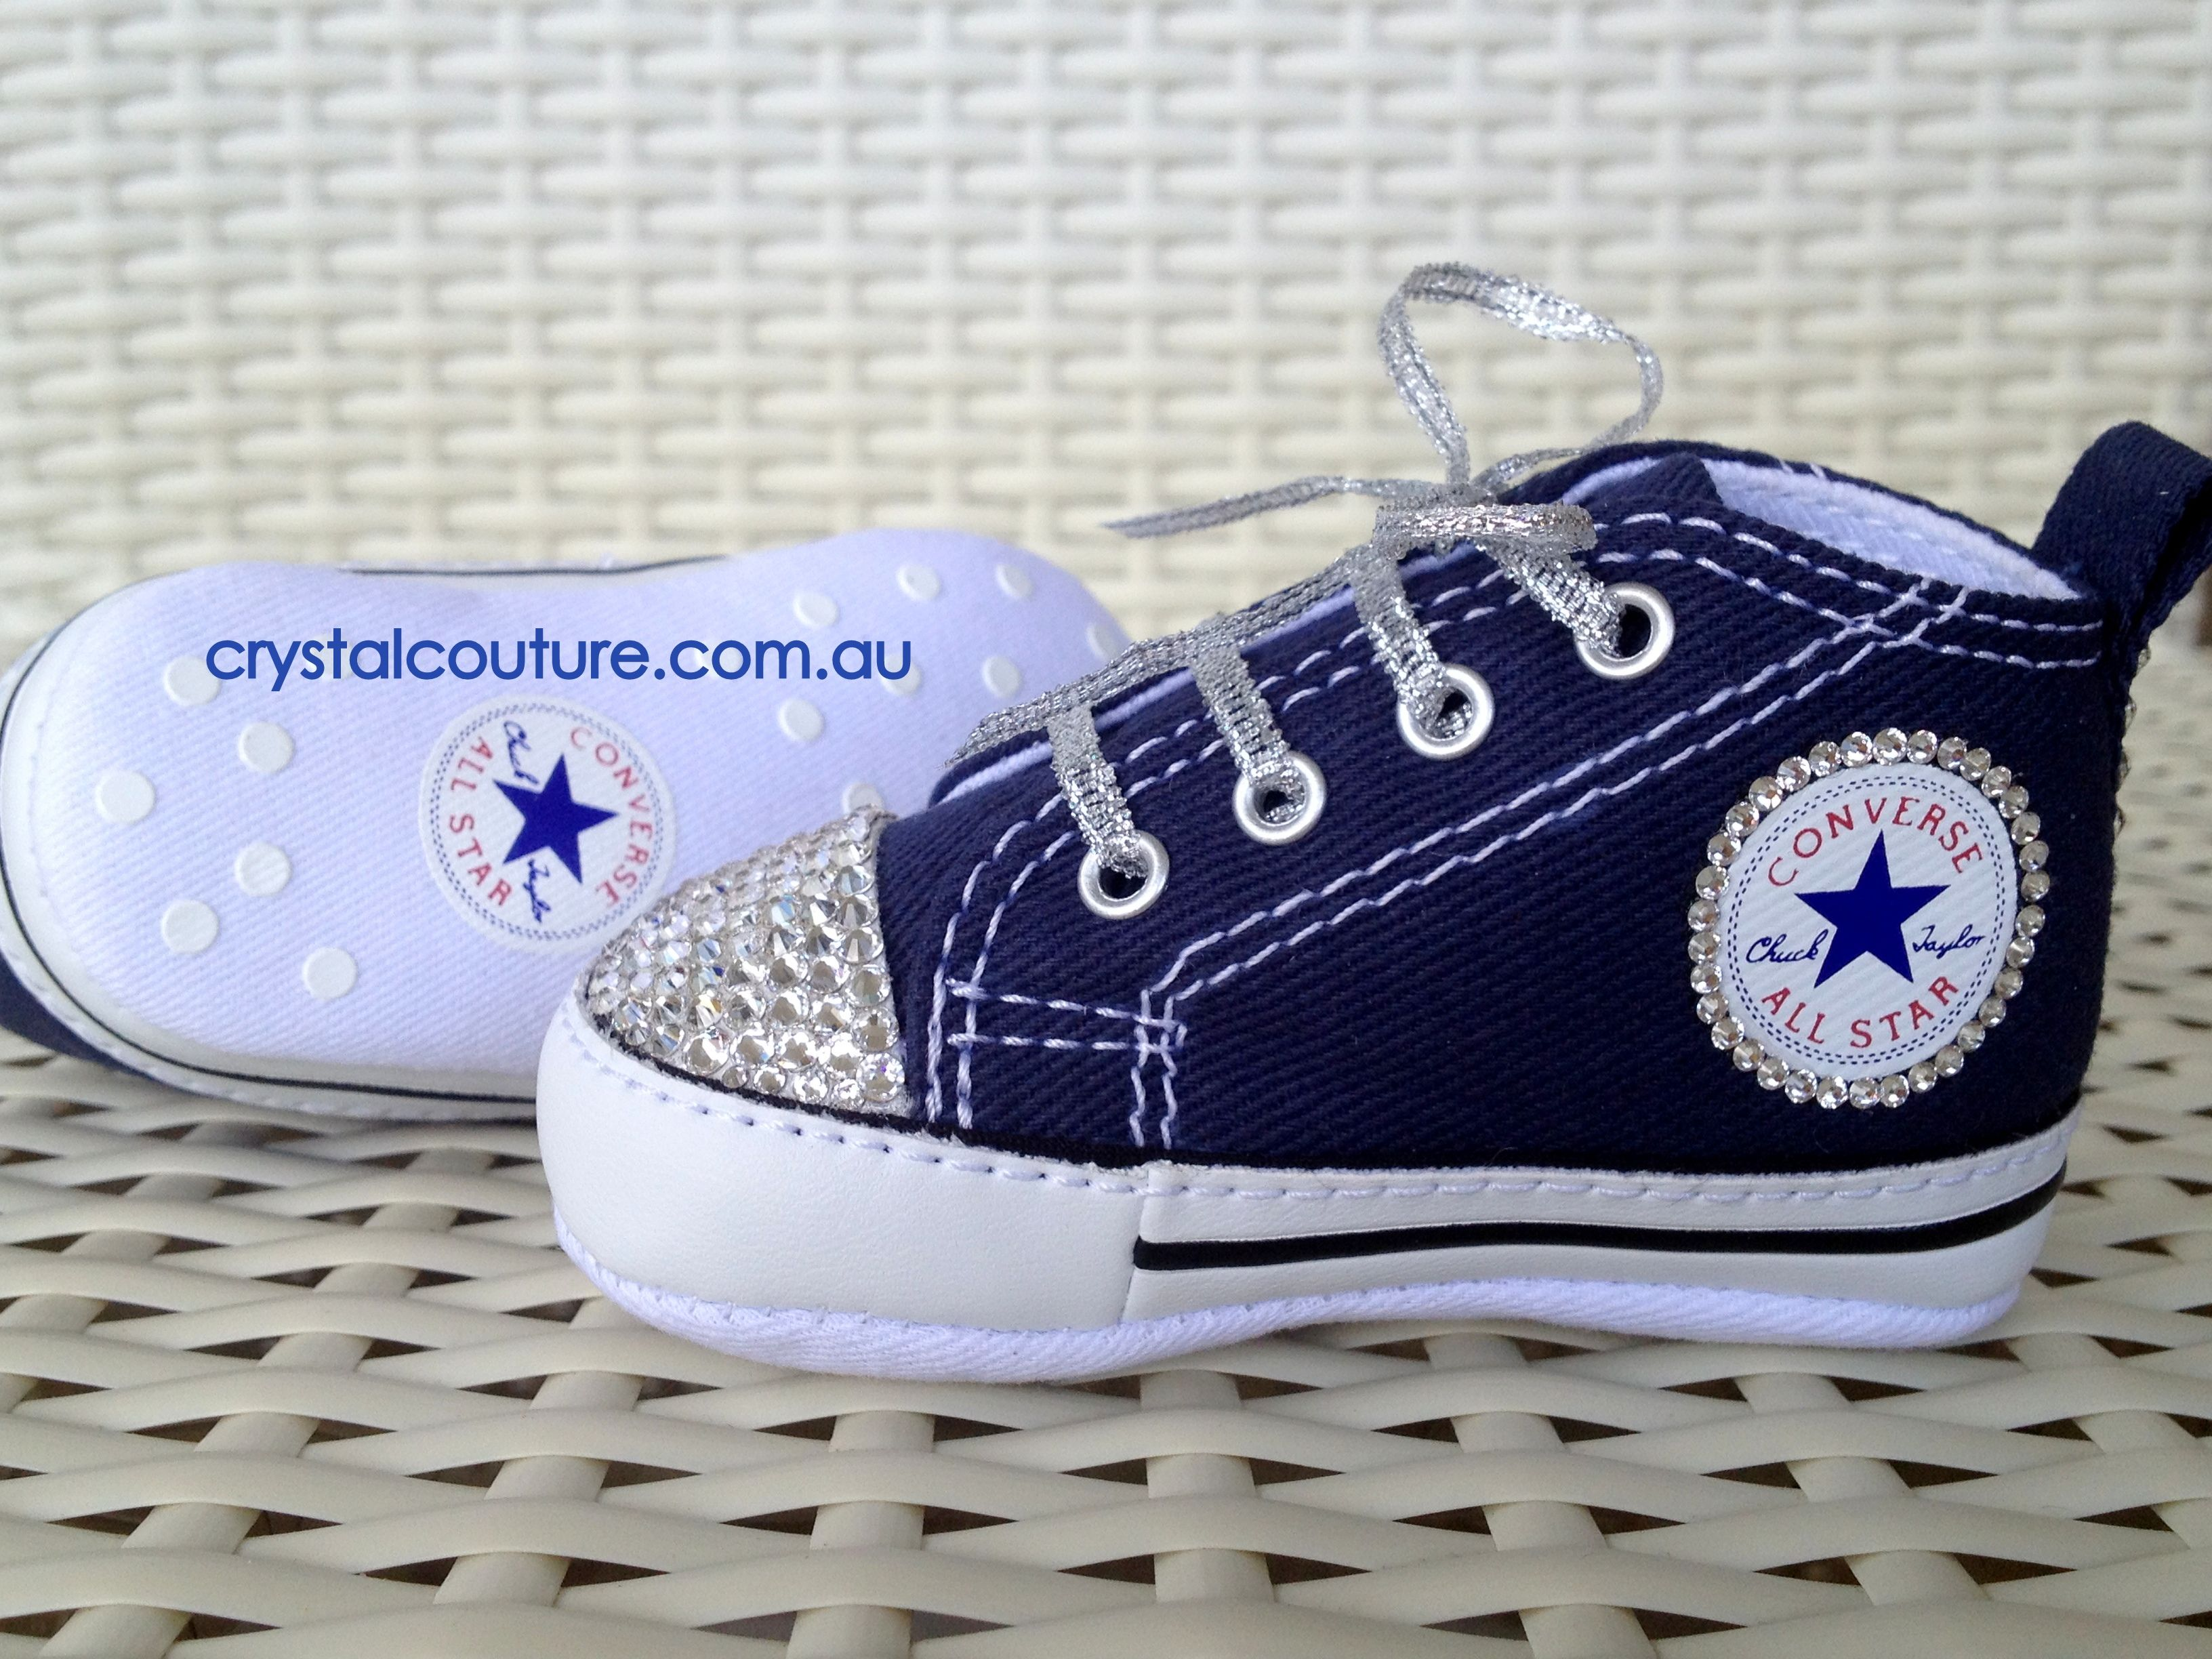 e671926d7a1f Baby s first Converse made extra fabulous with Swarovski Crystals!  Baby   Bling  Swarovski  Converse